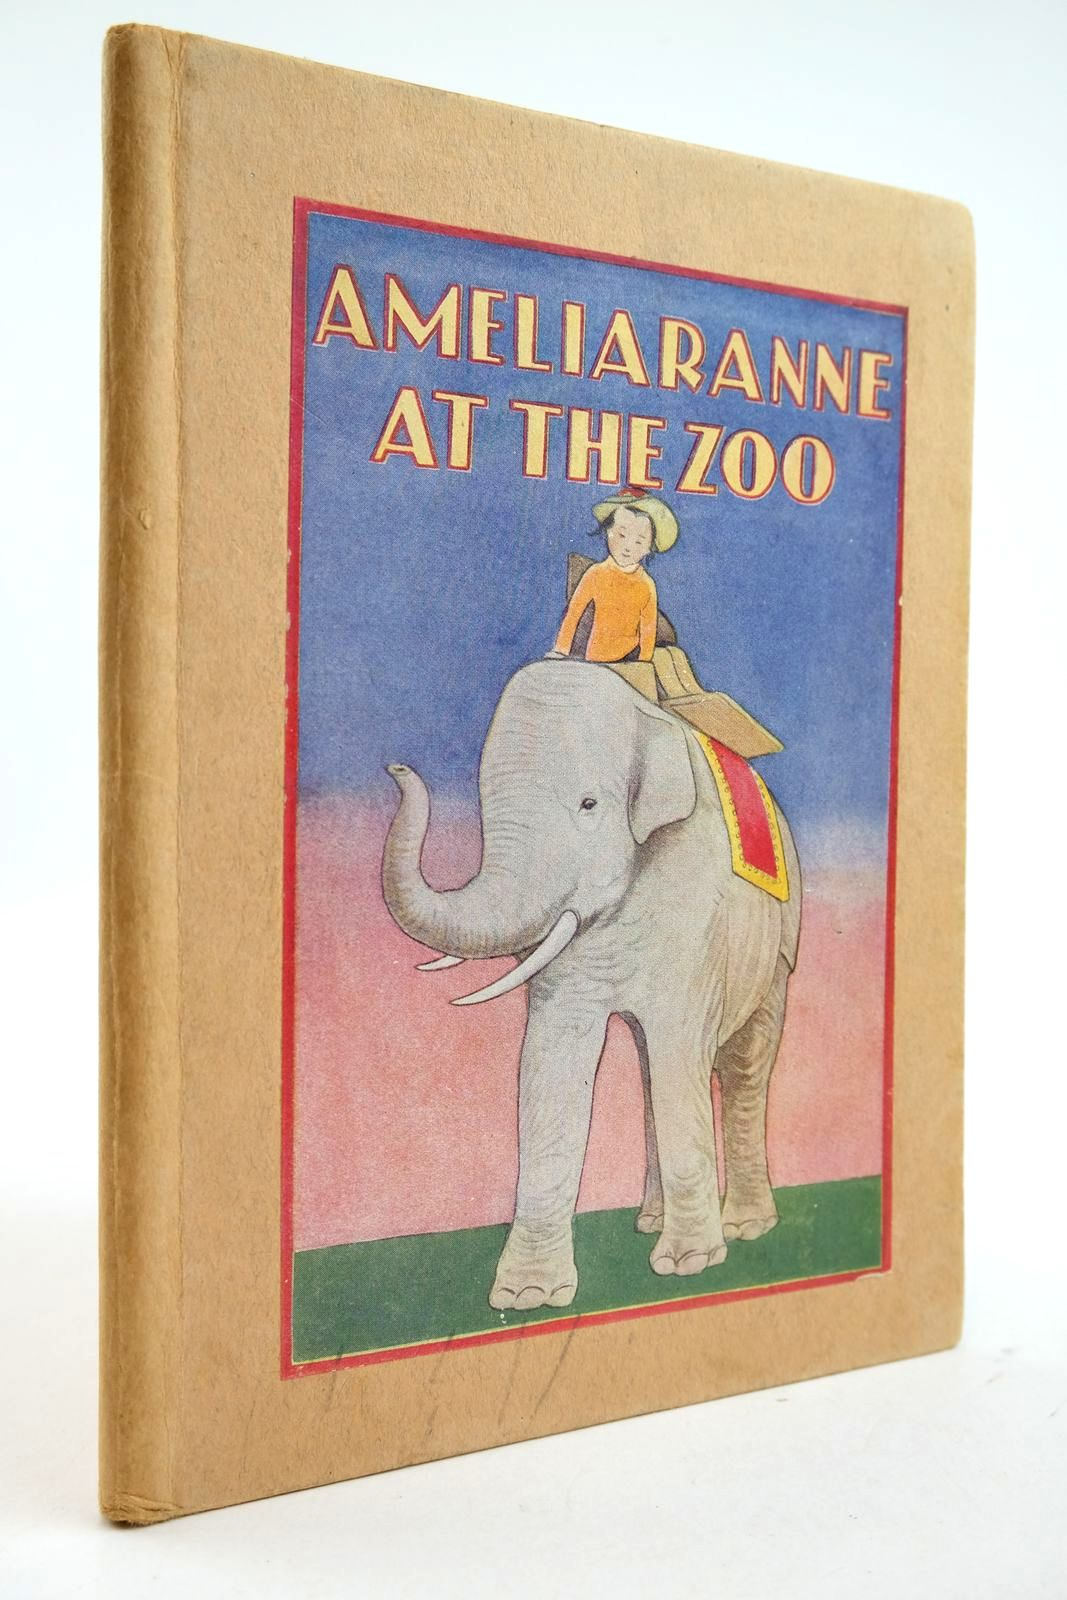 Photo of AMELIARANNE AT THE ZOO written by Thompson, K.L. illustrated by Pearse, S.B. published by George G. Harrap & Co. Ltd. (STOCK CODE: 2132861)  for sale by Stella & Rose's Books